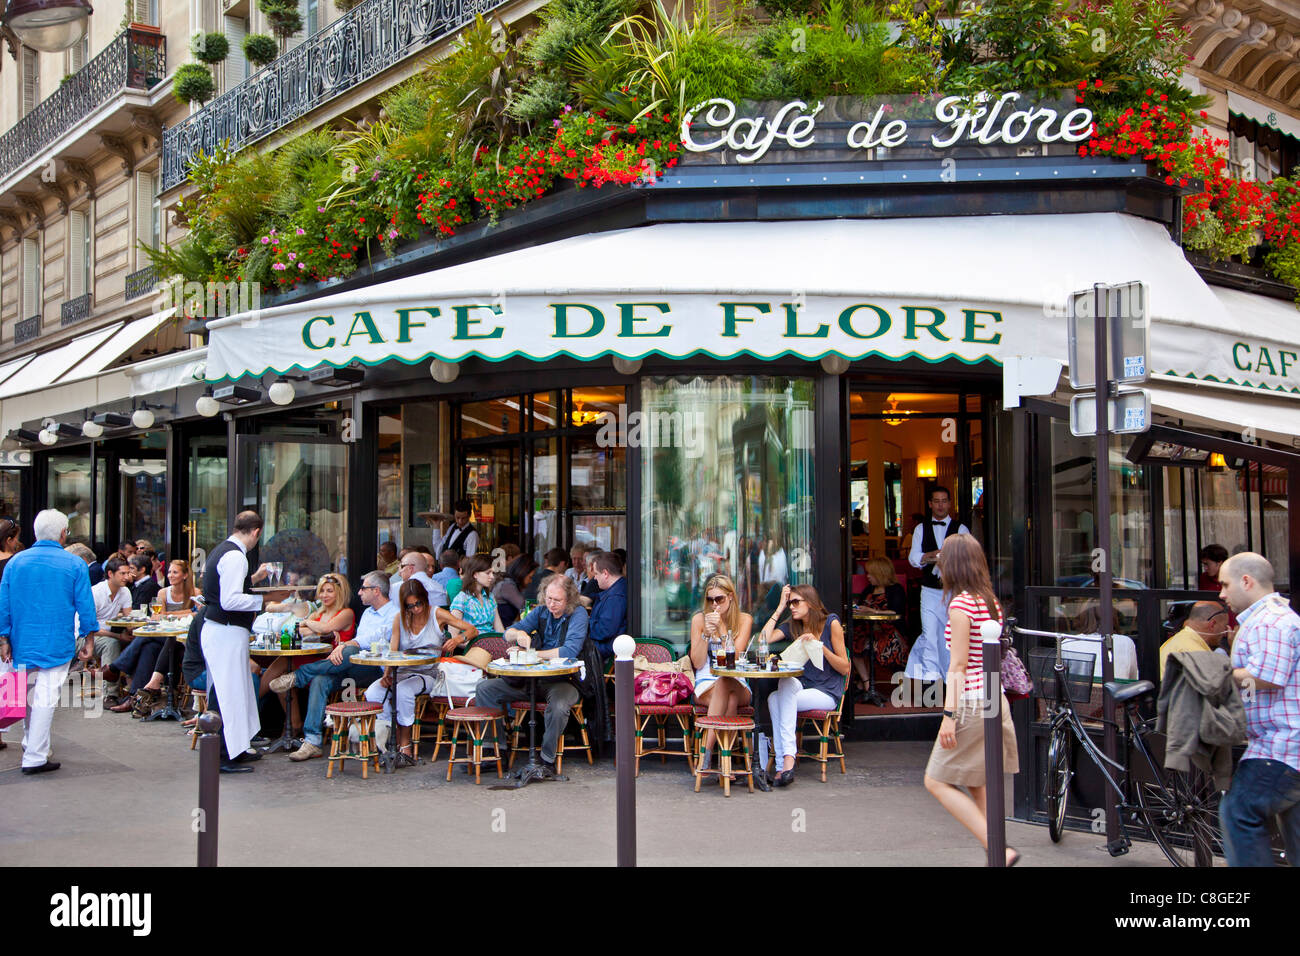 Cafe de Flore, Saint-Germain-des-Pres, Left Bank, Paris, France - Stock Image